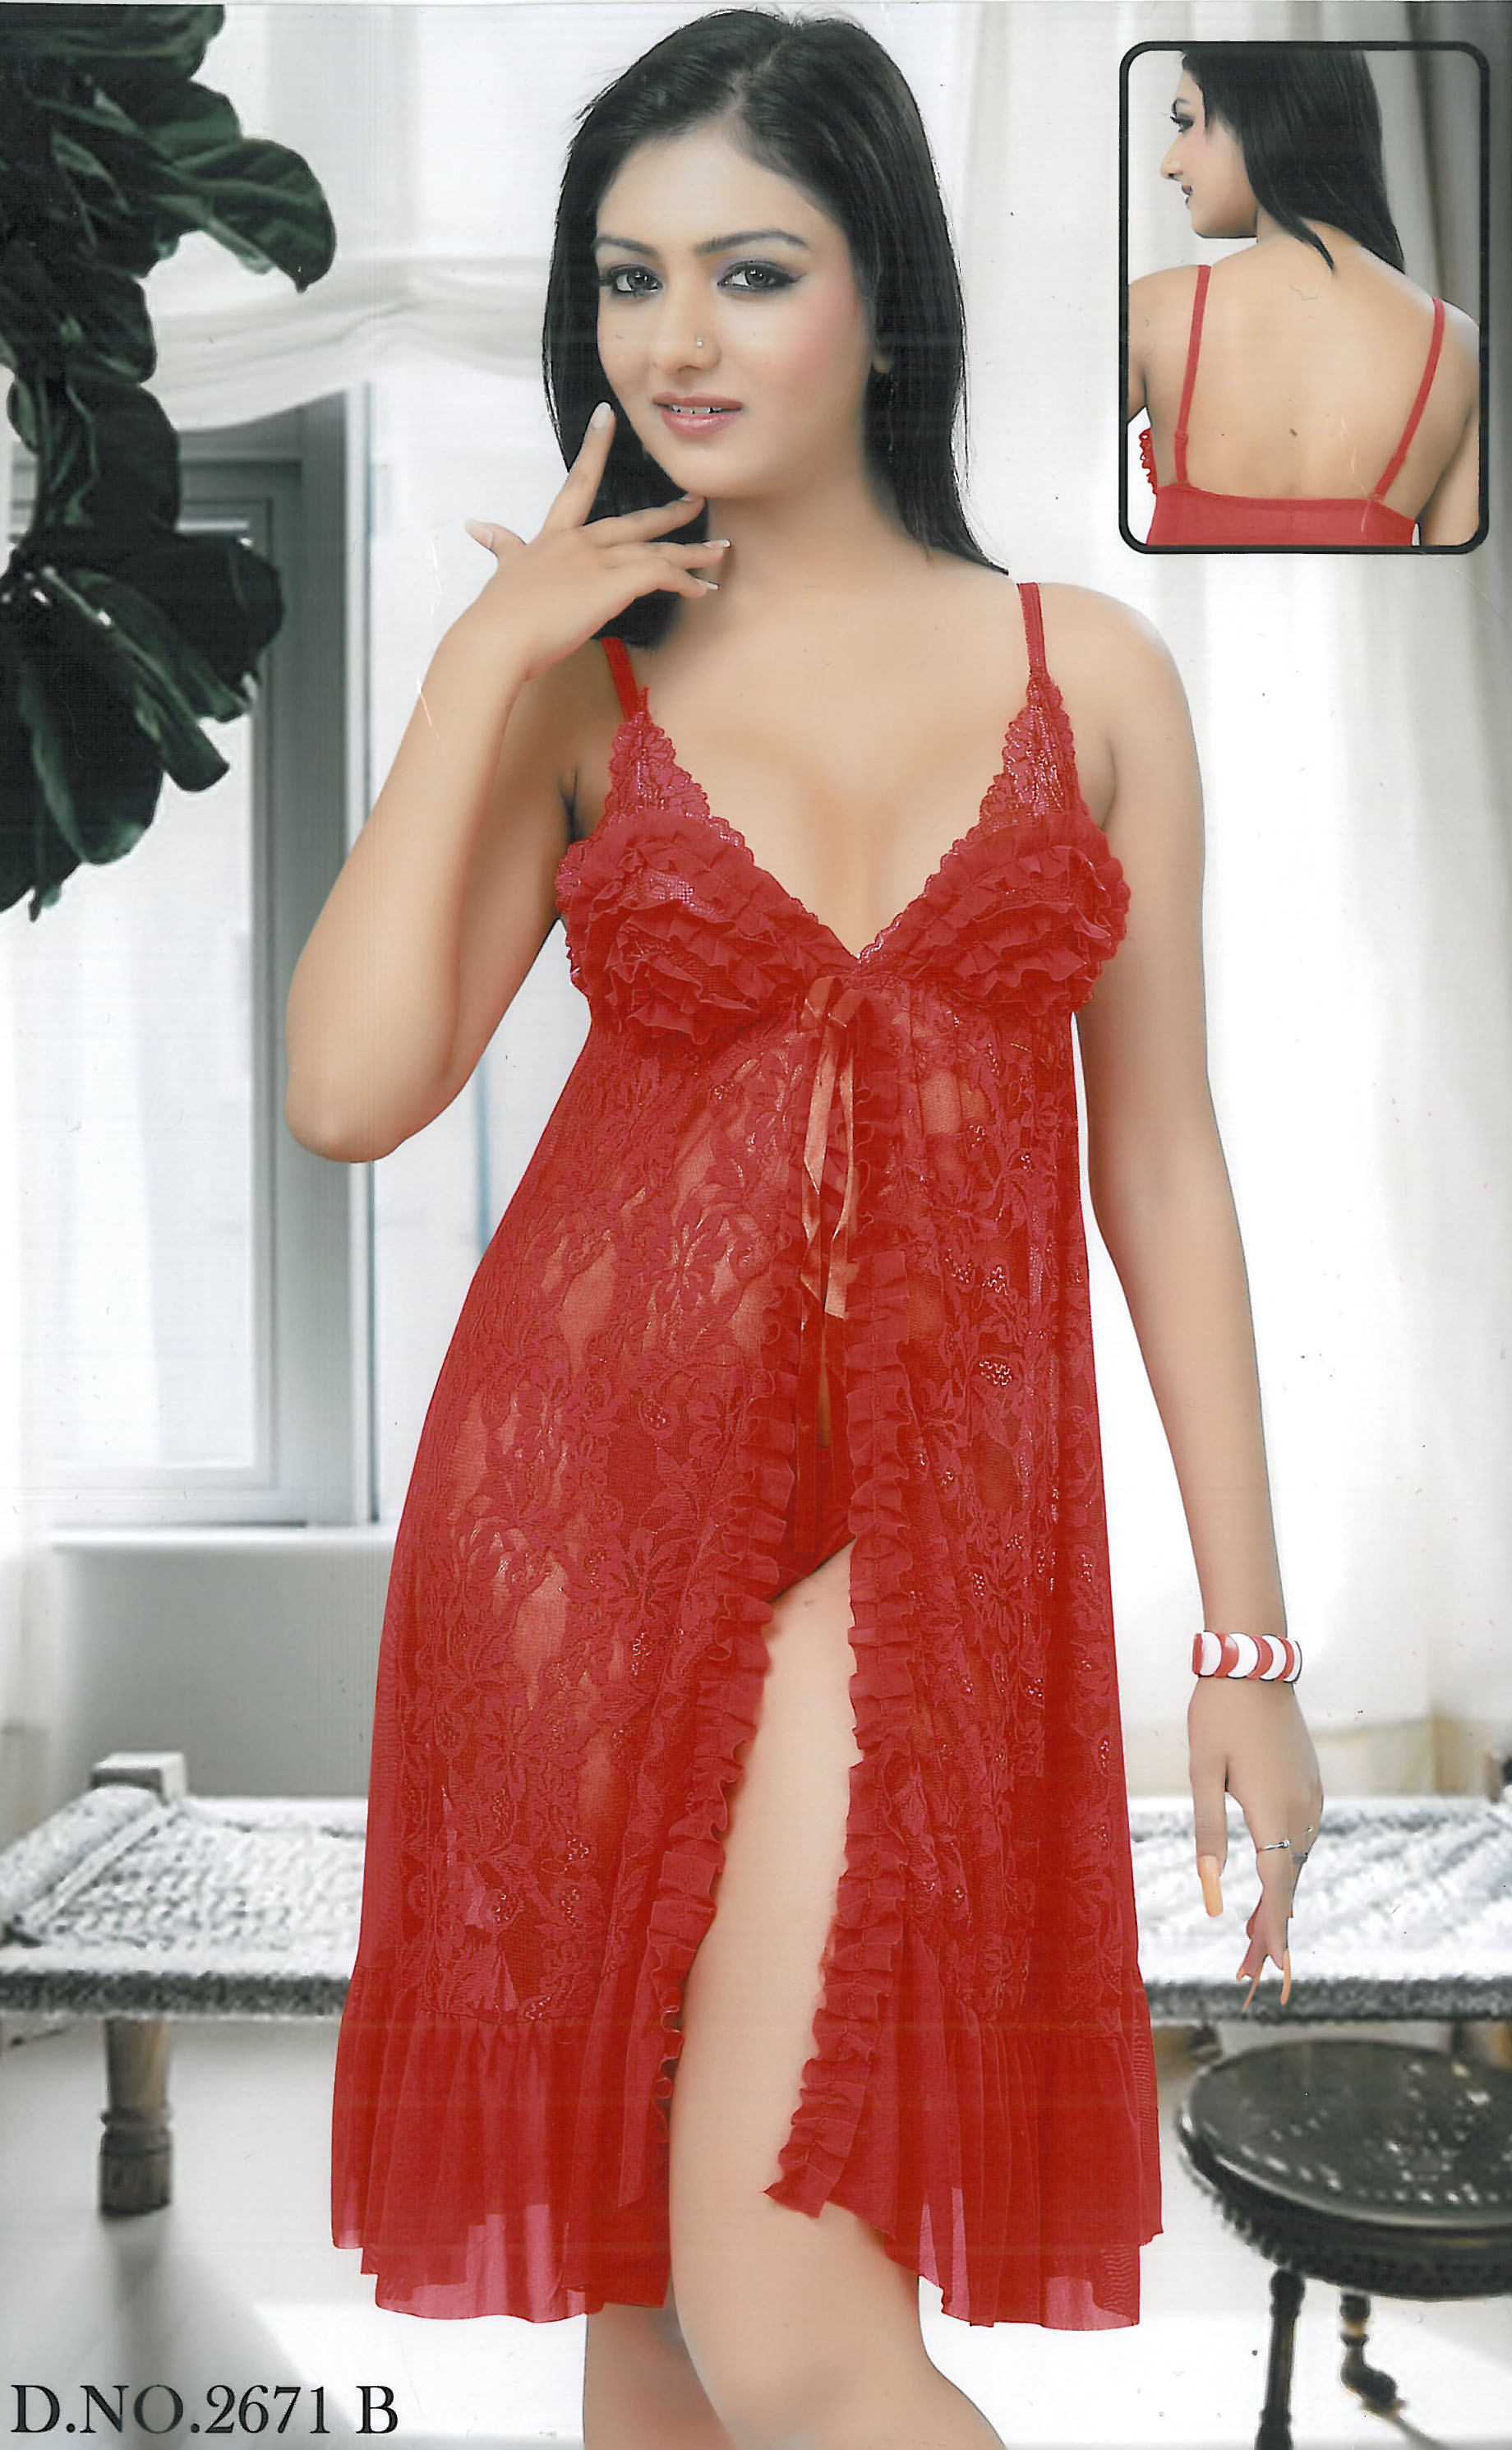 Discount Sexy Honeymoon Nightwear 9